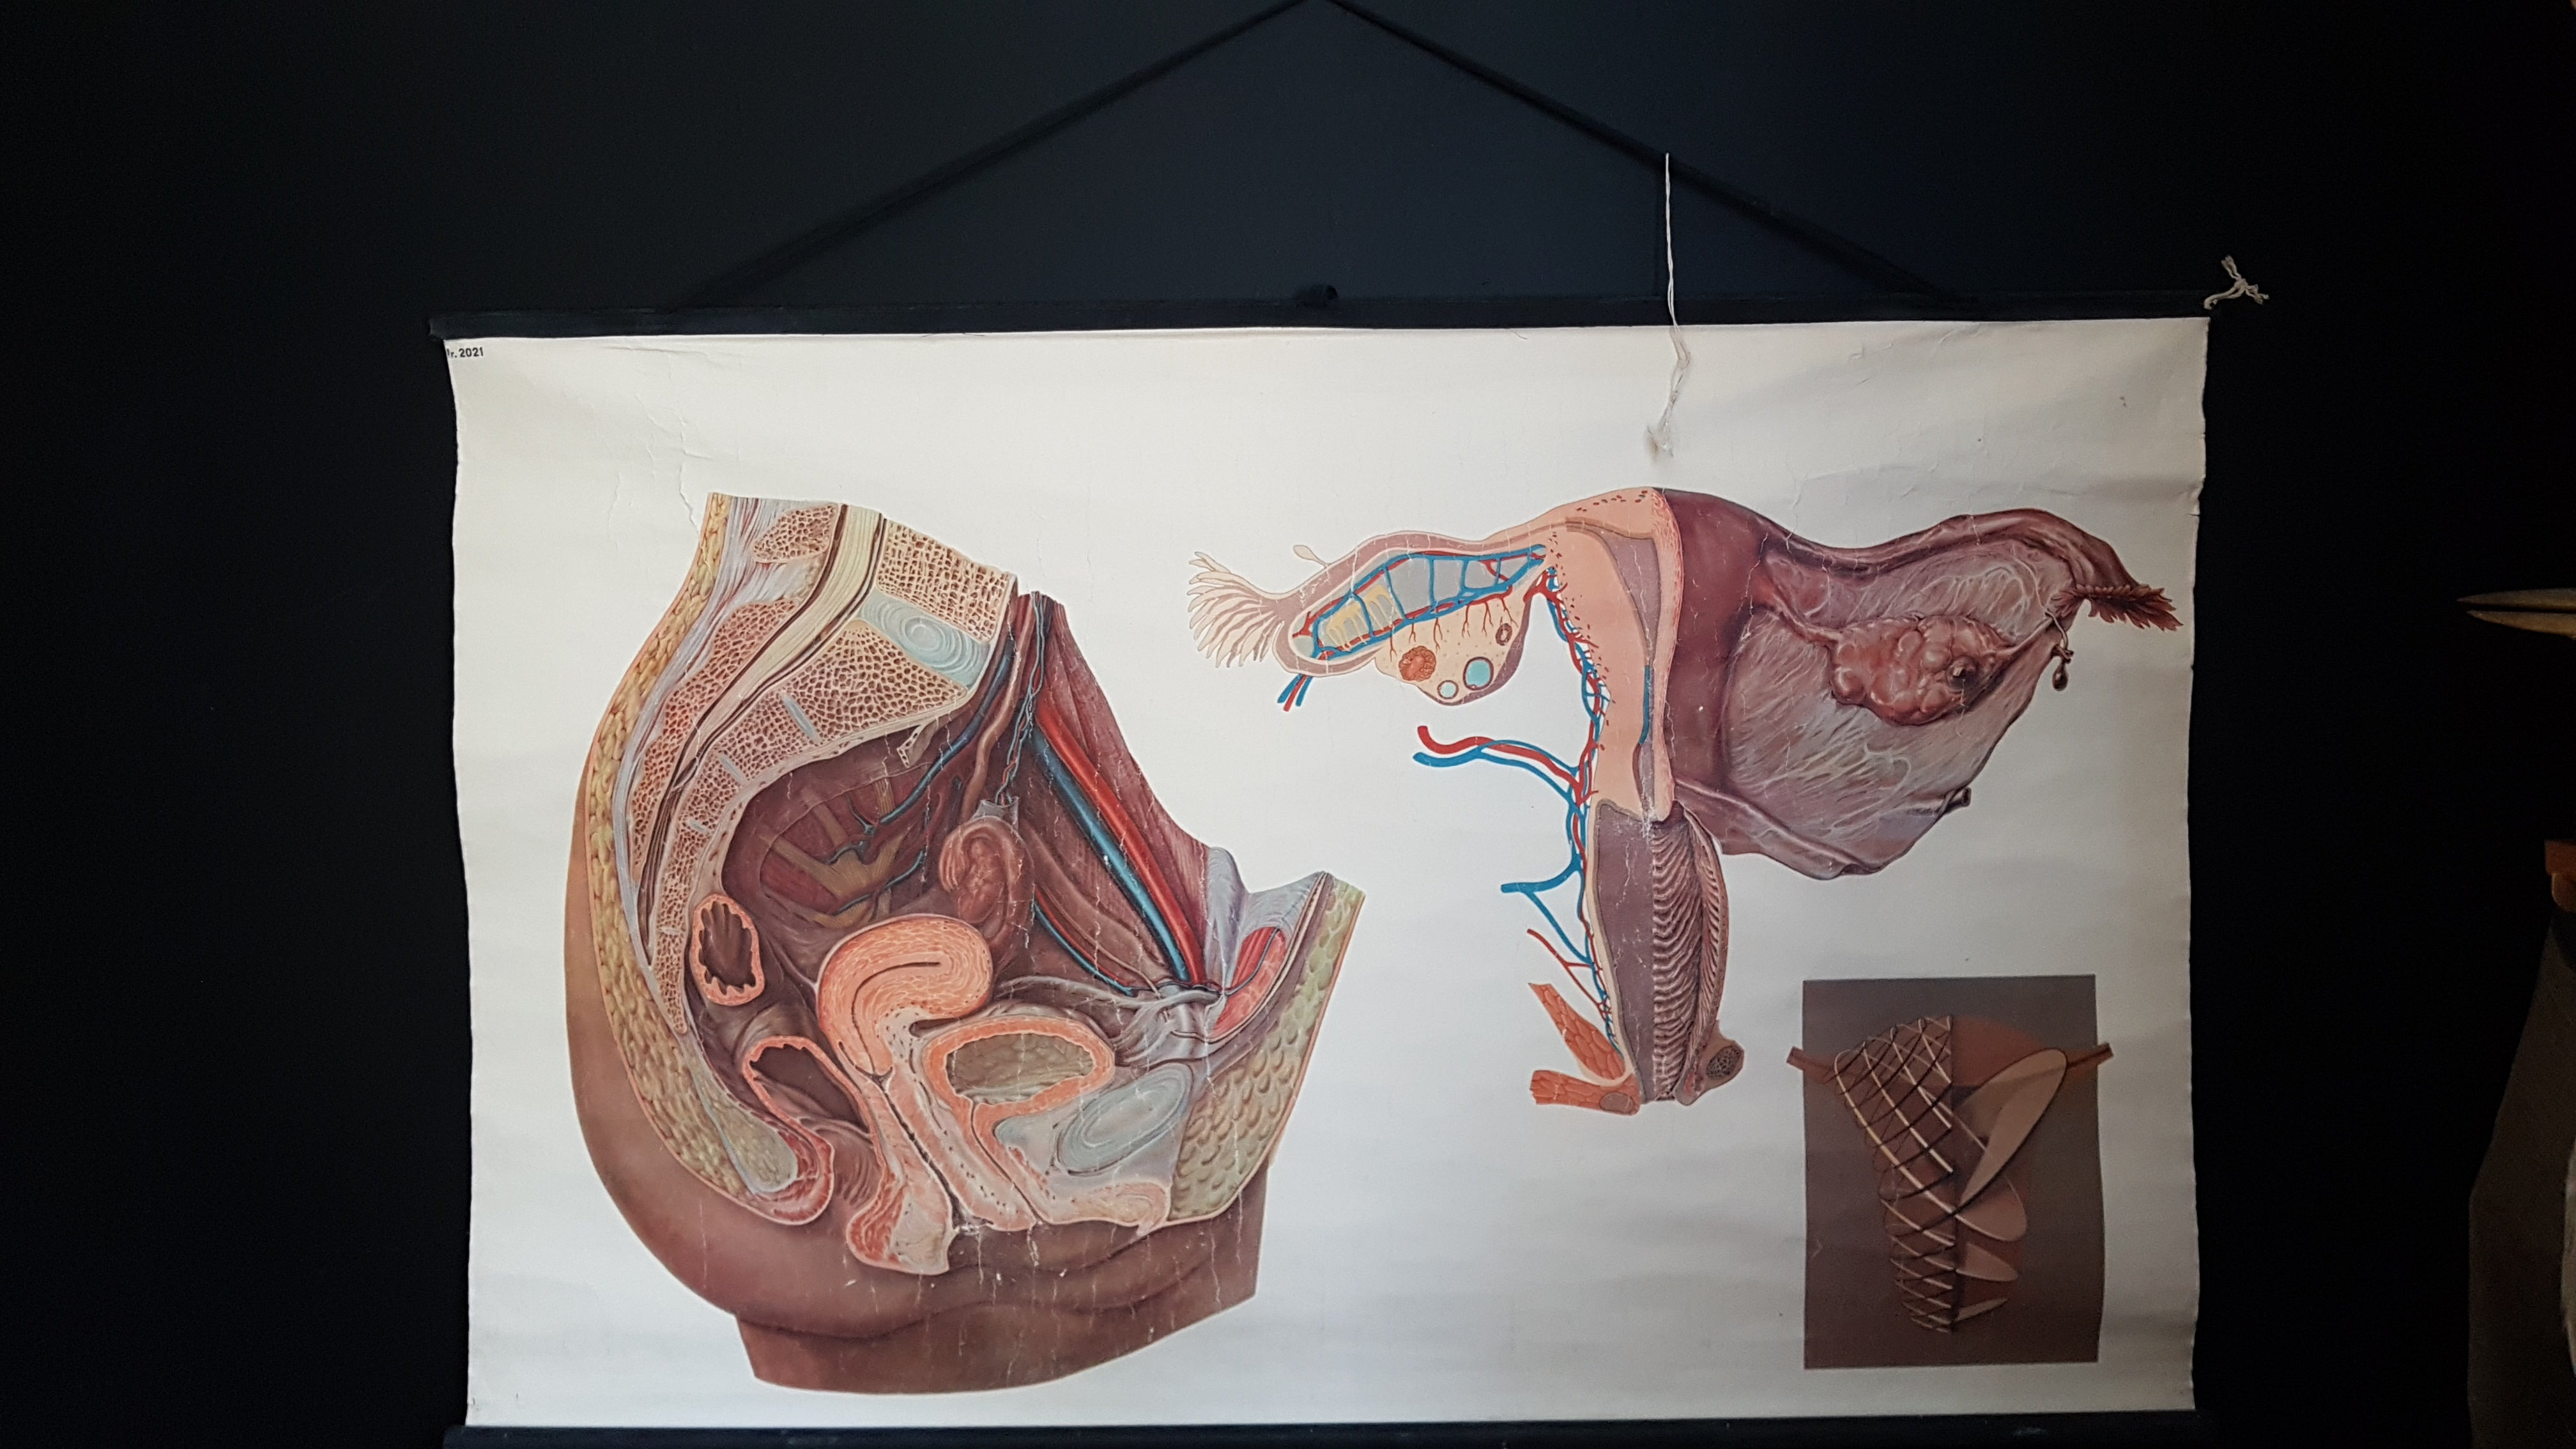 Vintage French educational poster Genitals biology anatomy by Jeulin